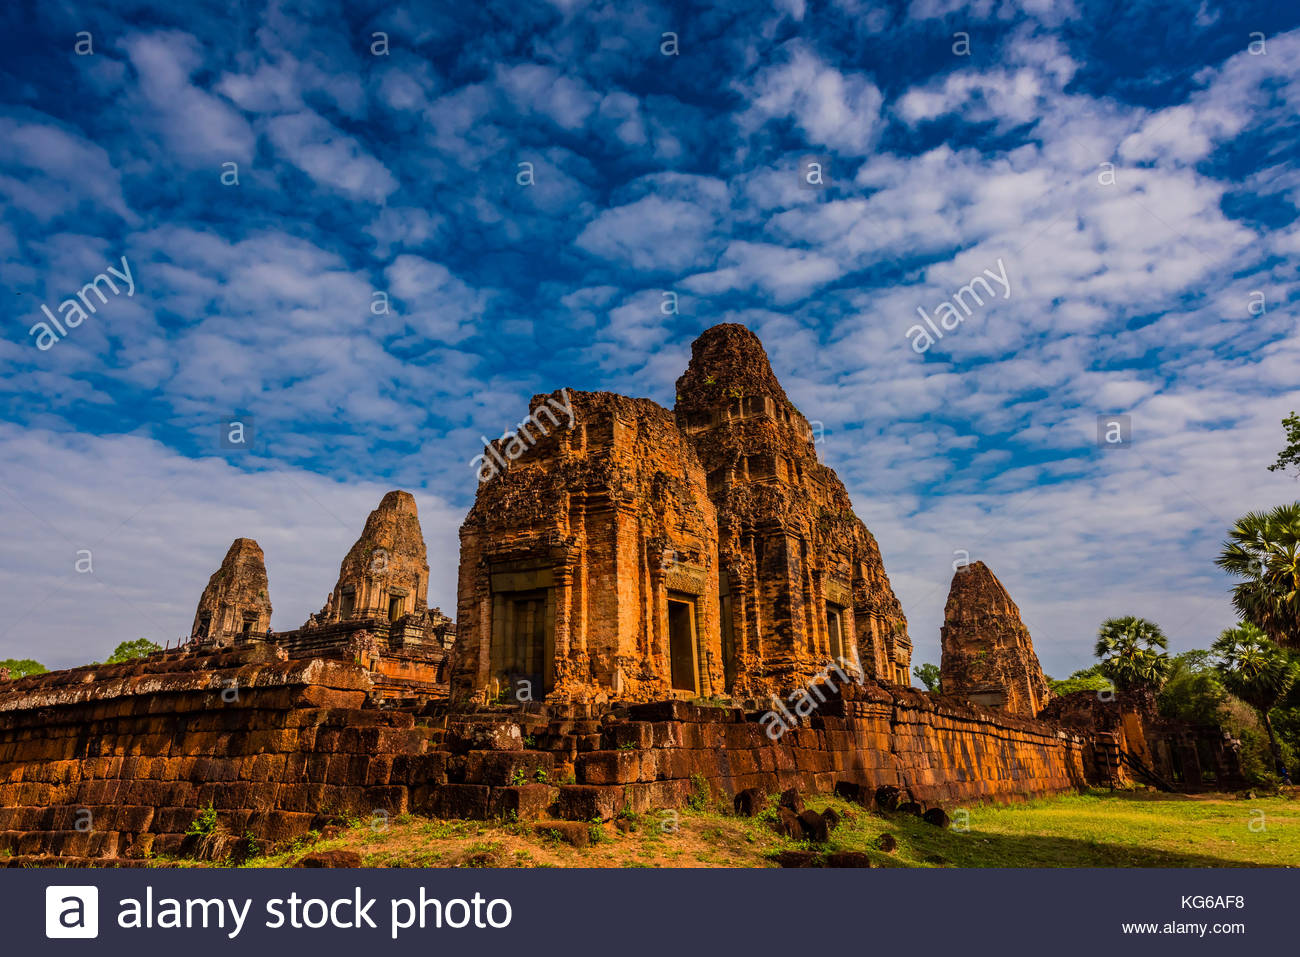 Pre Rup is a Hindu temple at Angkor, Cambodia, built as the state temple of Khmer king Rajendravarman and dedicated - Stock Image